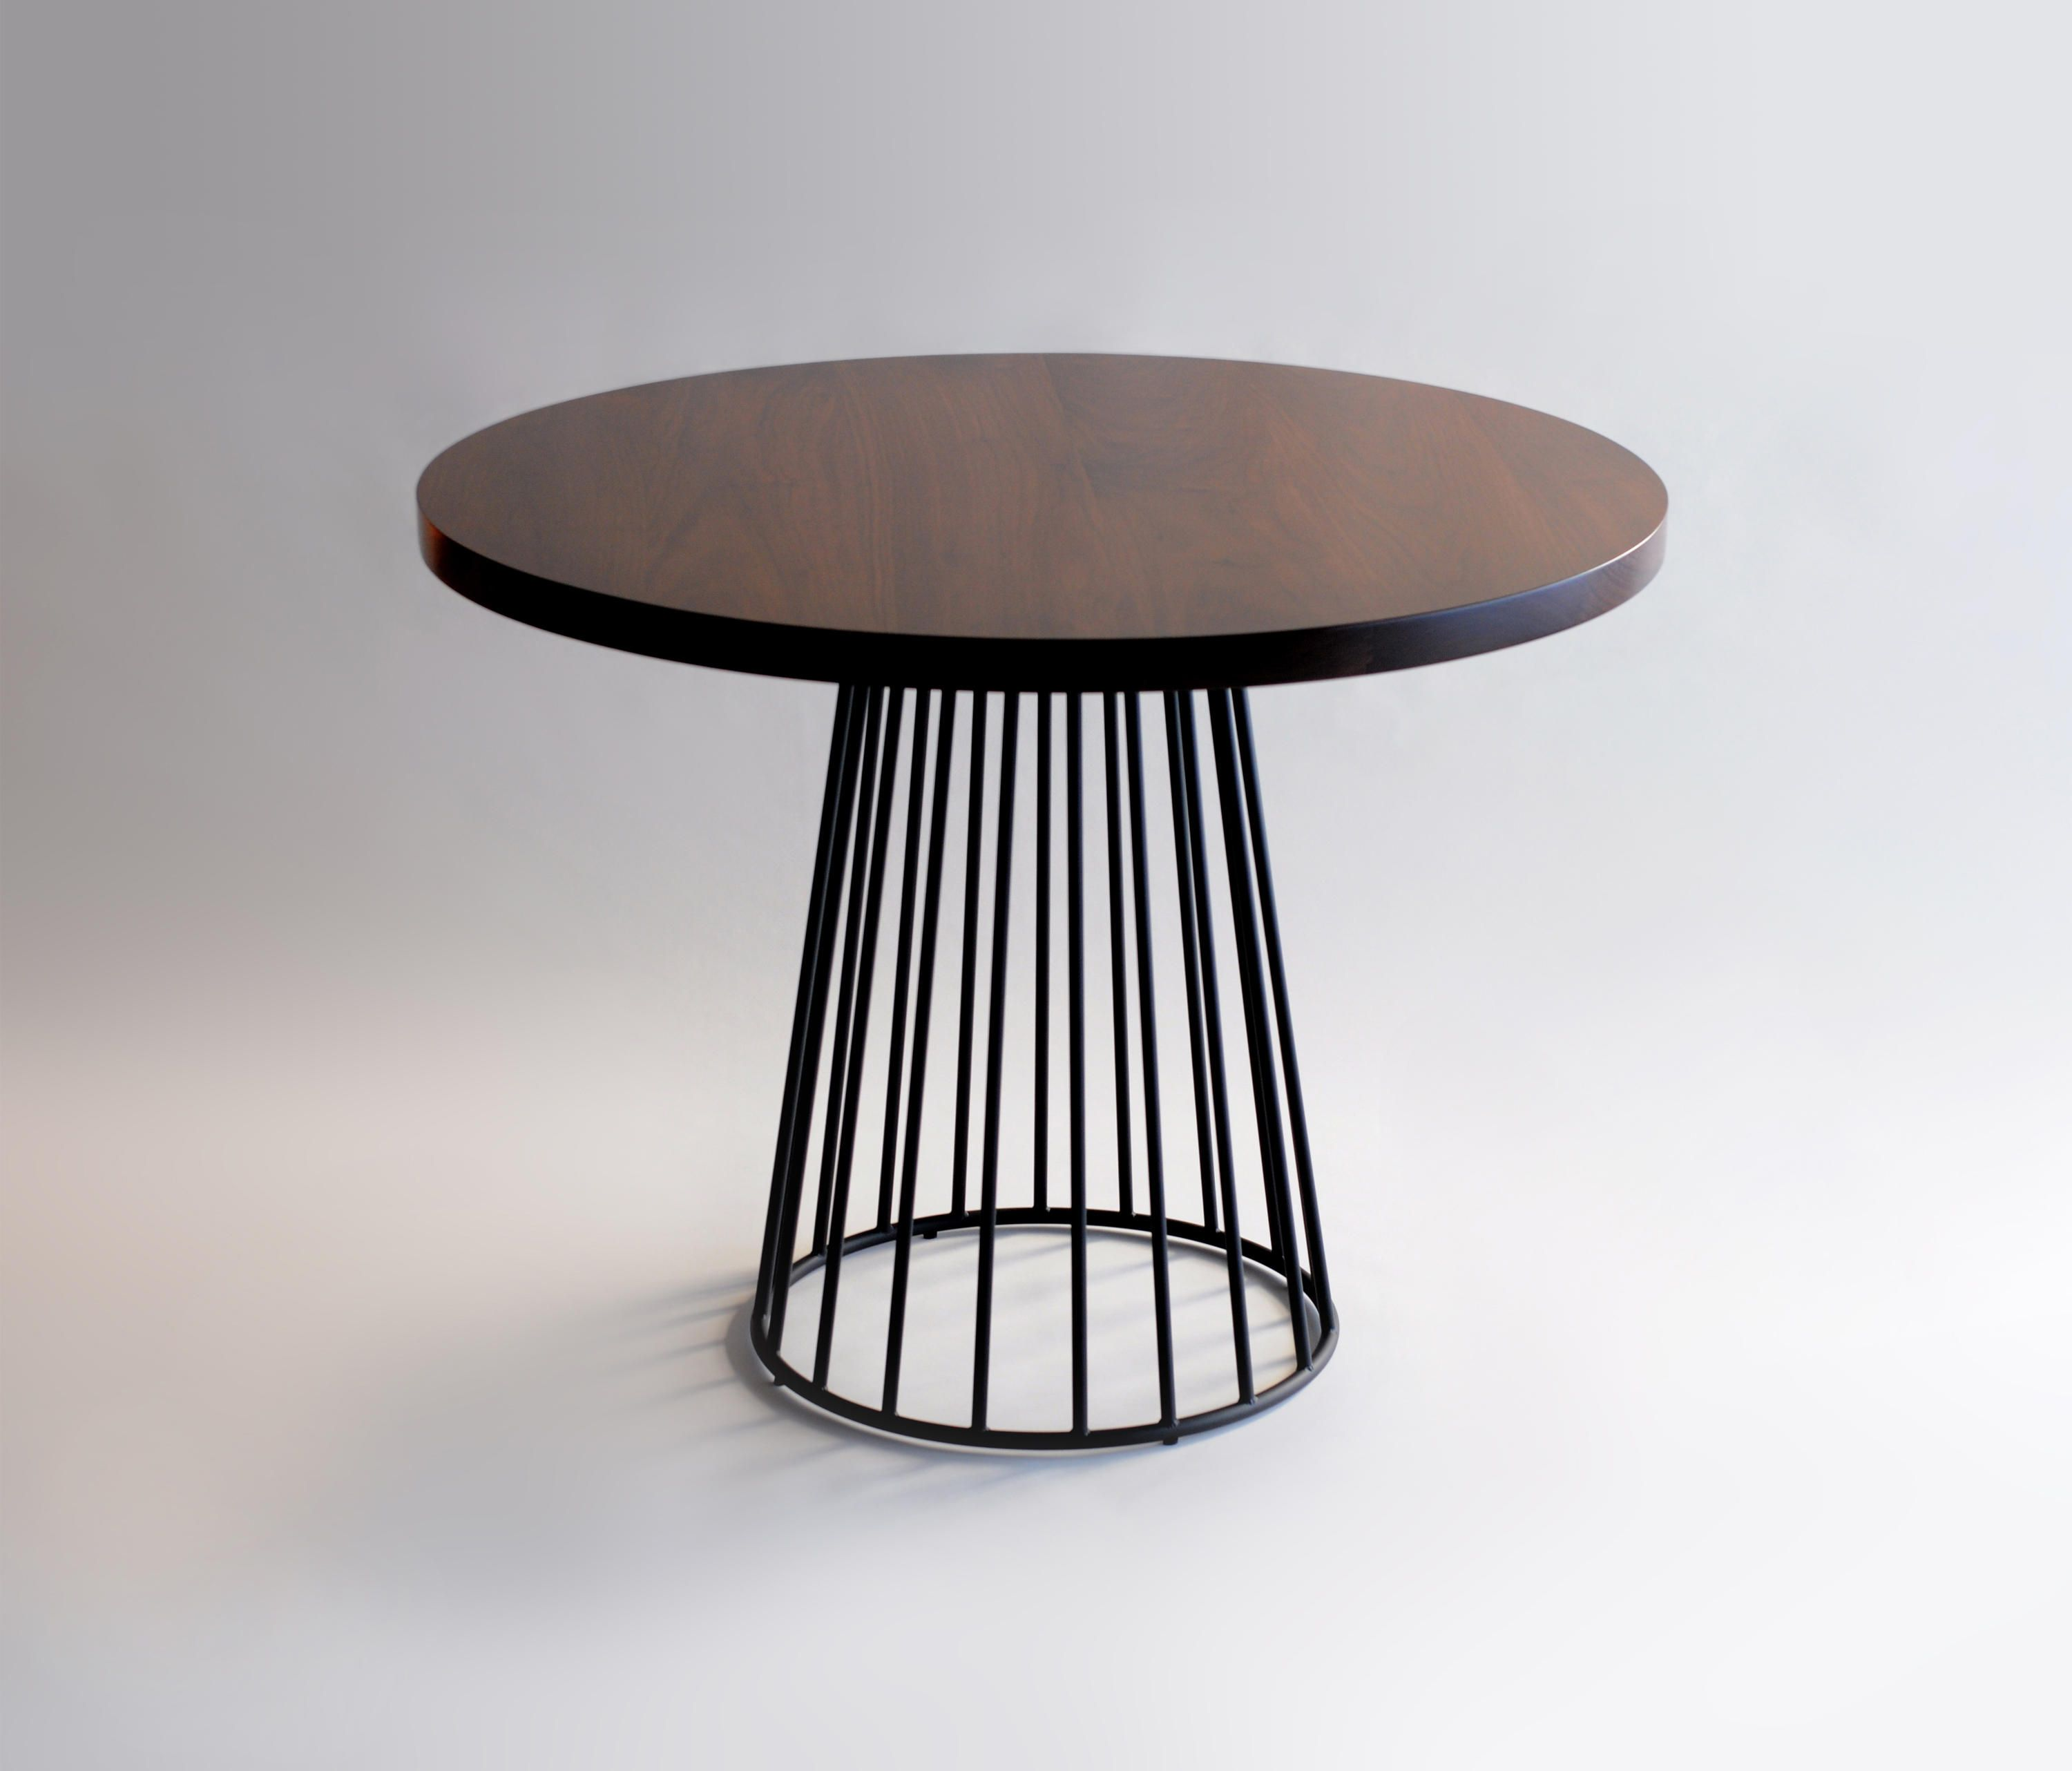 https://www.architonic.com/de/product/phase-design-wired-cafe-table ...